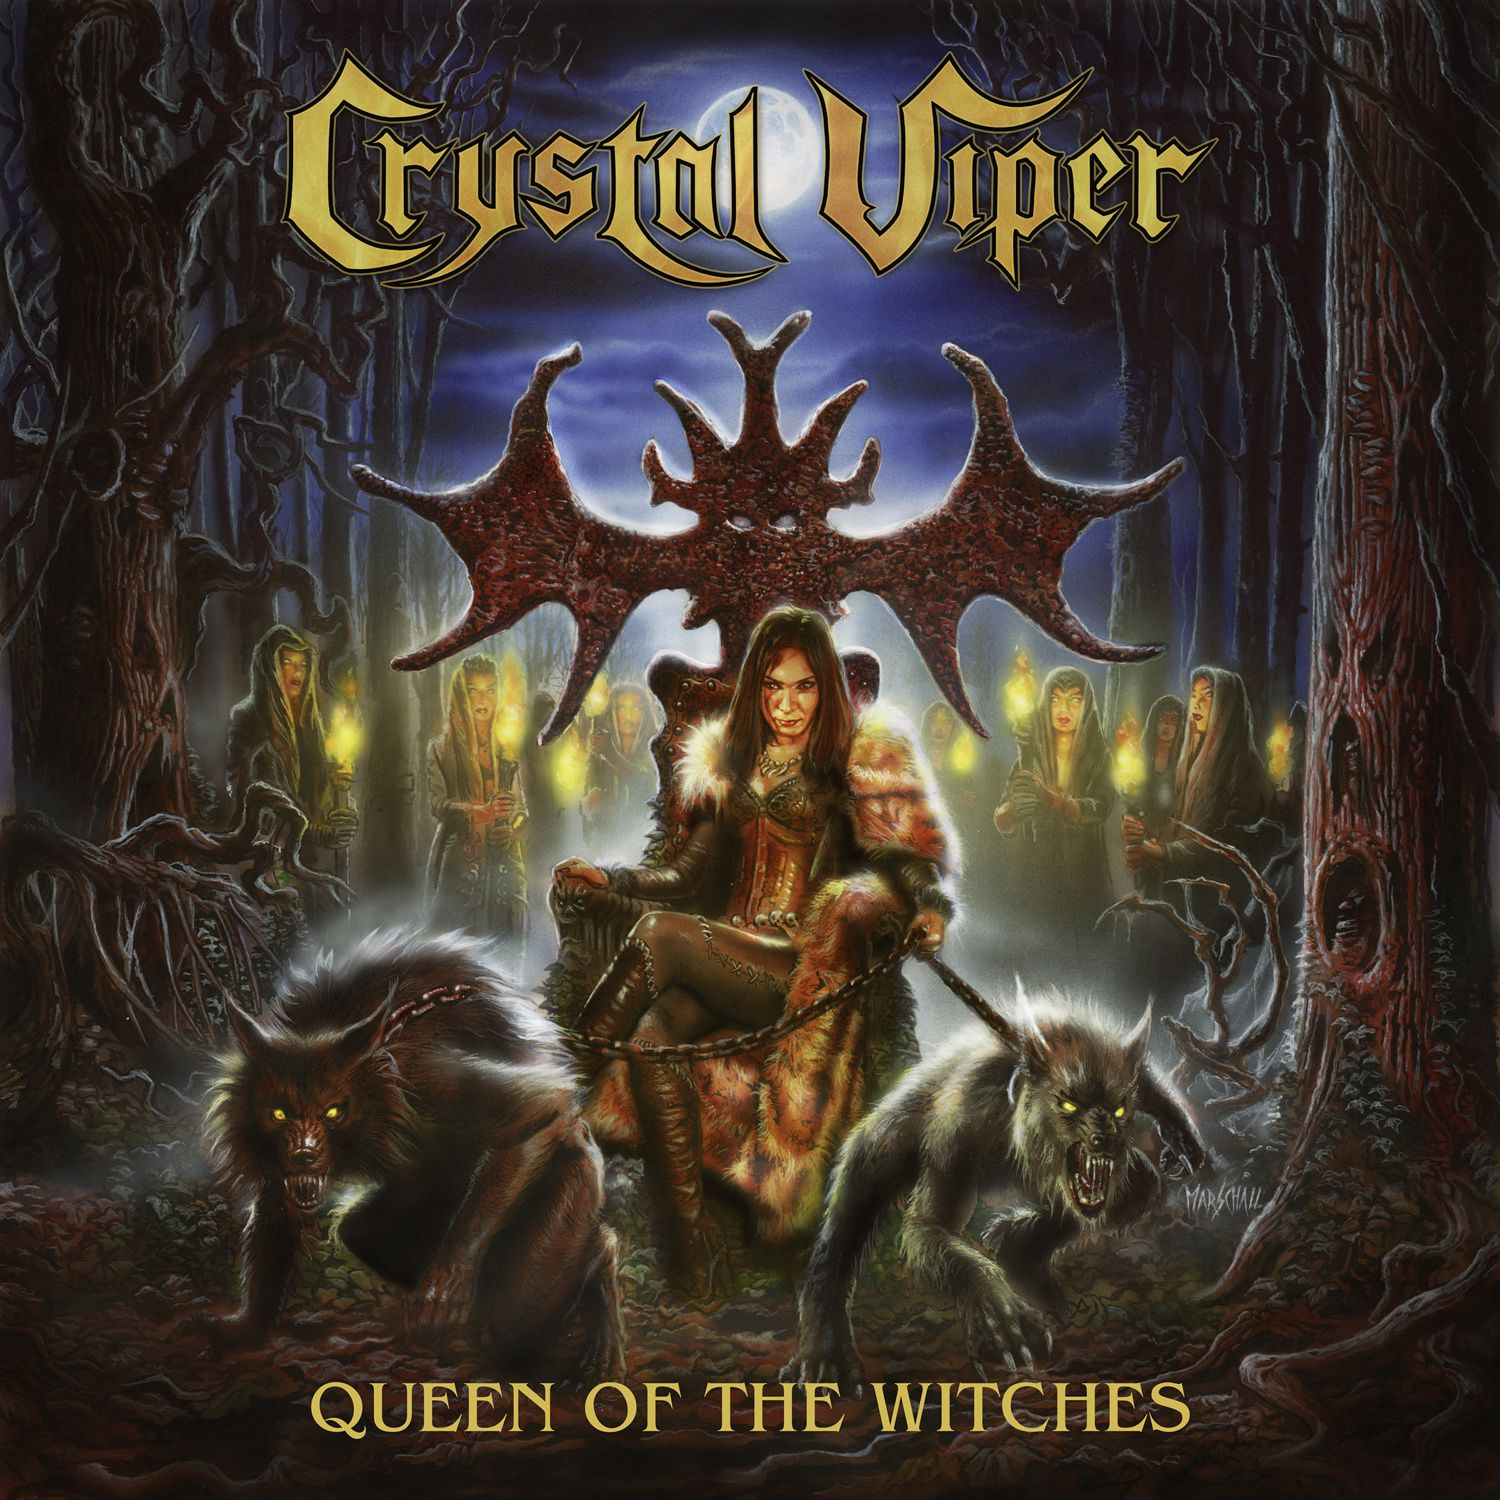 CD review CRYSTAL VIPER &quot&#x3B;Queen of the Witches&quot&#x3B;